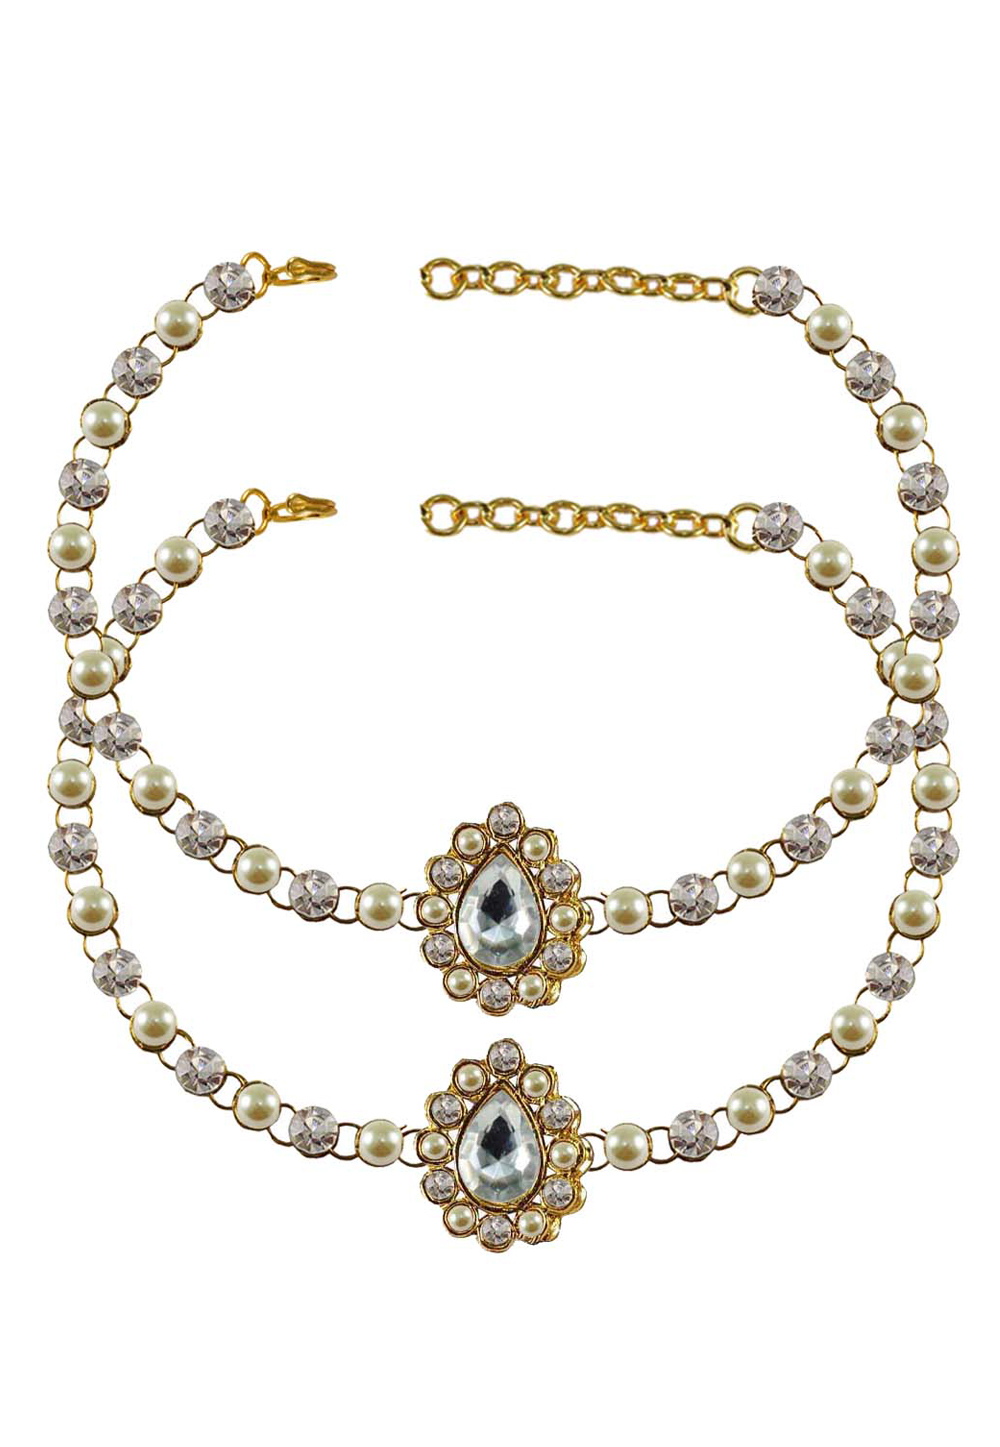 White Brass Gold Plated Anklets 171329